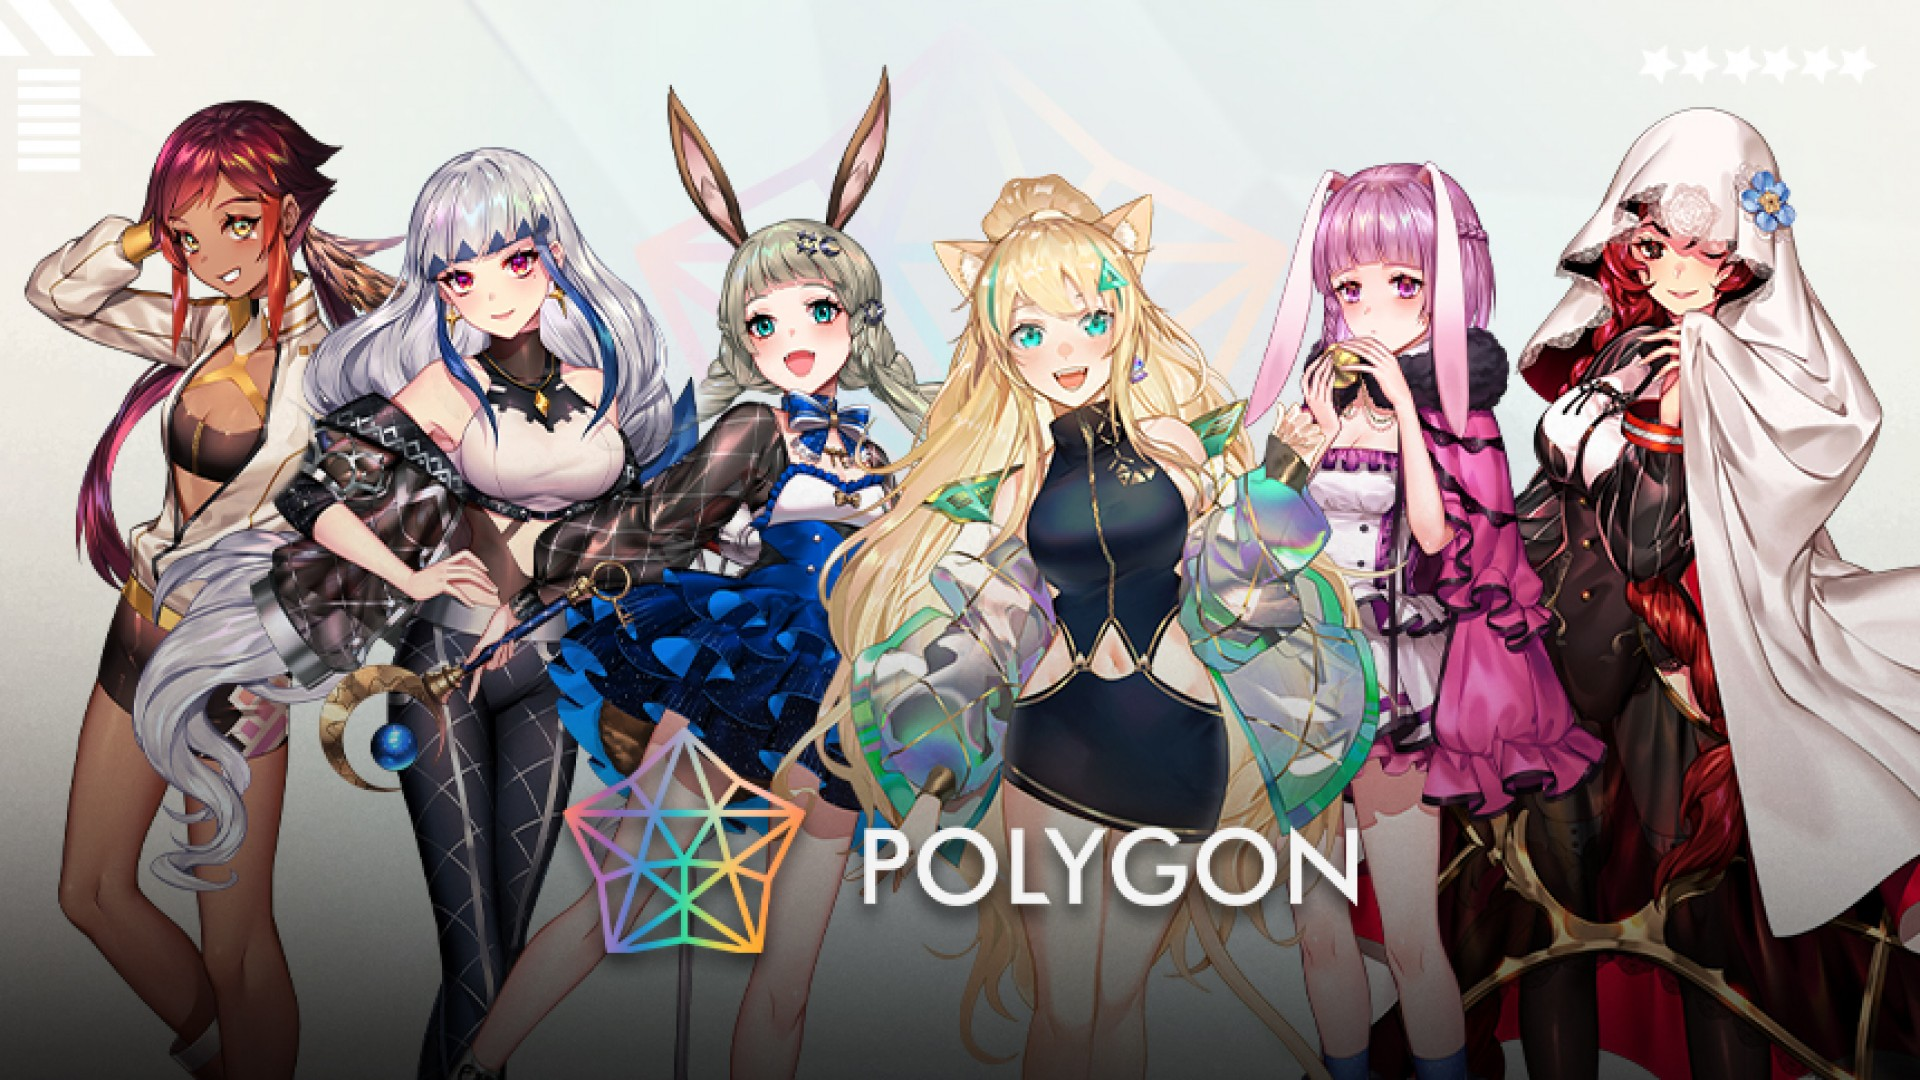 Polygon Project